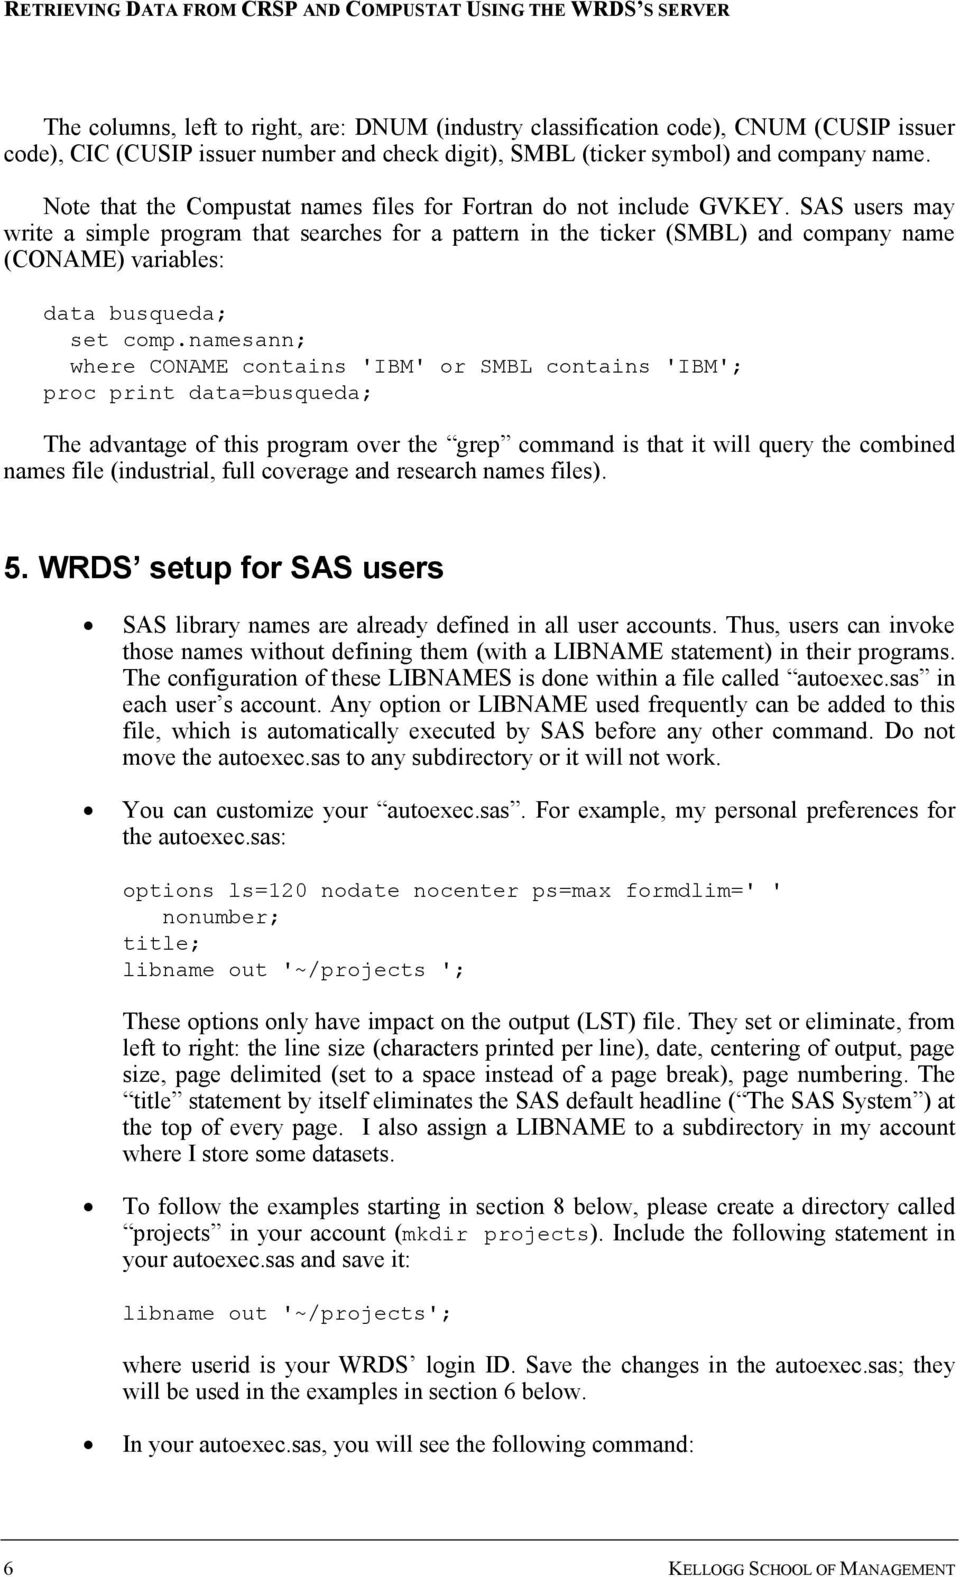 Retrieving Data from CRSP and Compustat Using the WRDS s